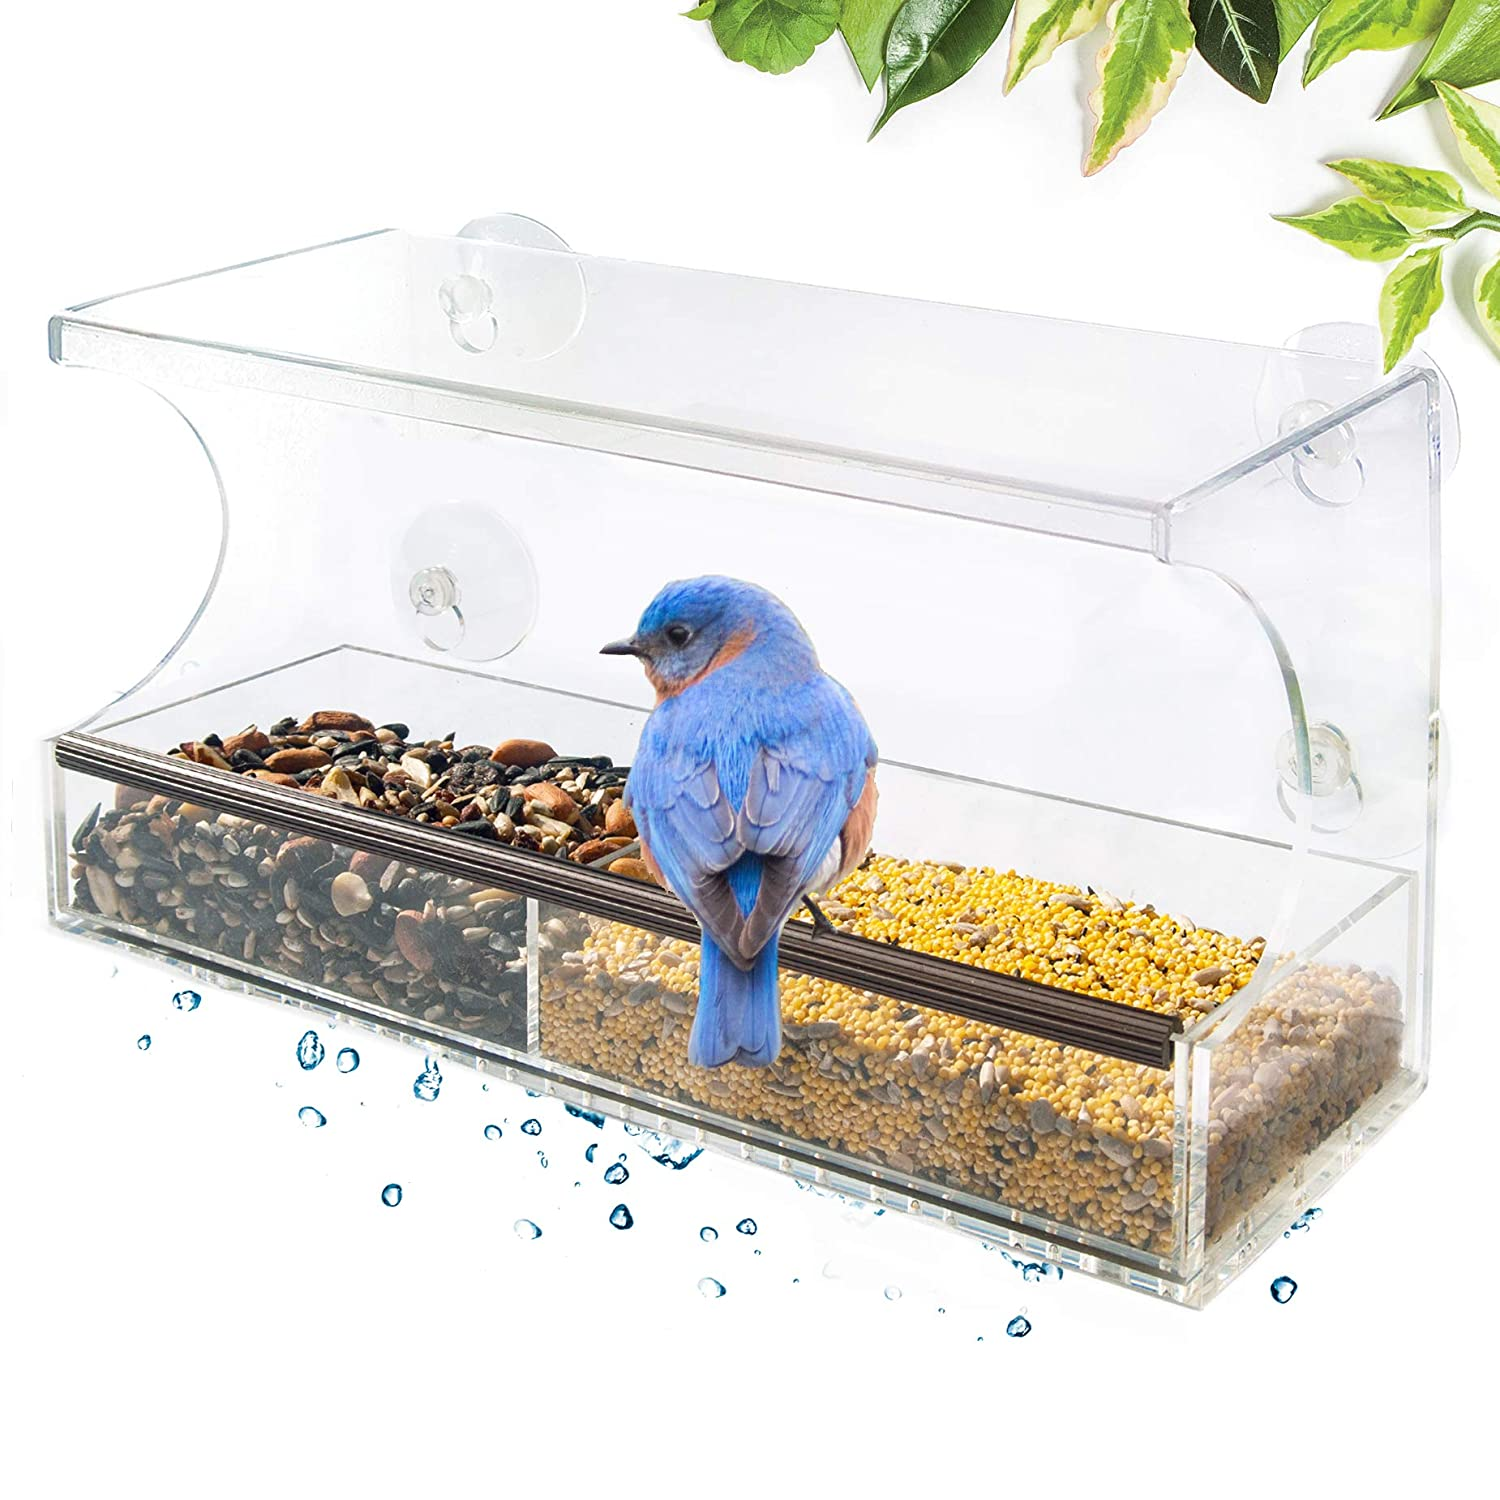 Go Simply Amazing Window Bird Feeder with Strong Suction Cups and Easily Removable Extra Large Seed Tray – Window Bird Feeders Bring Bird Watching Entertainment for The Whole Family